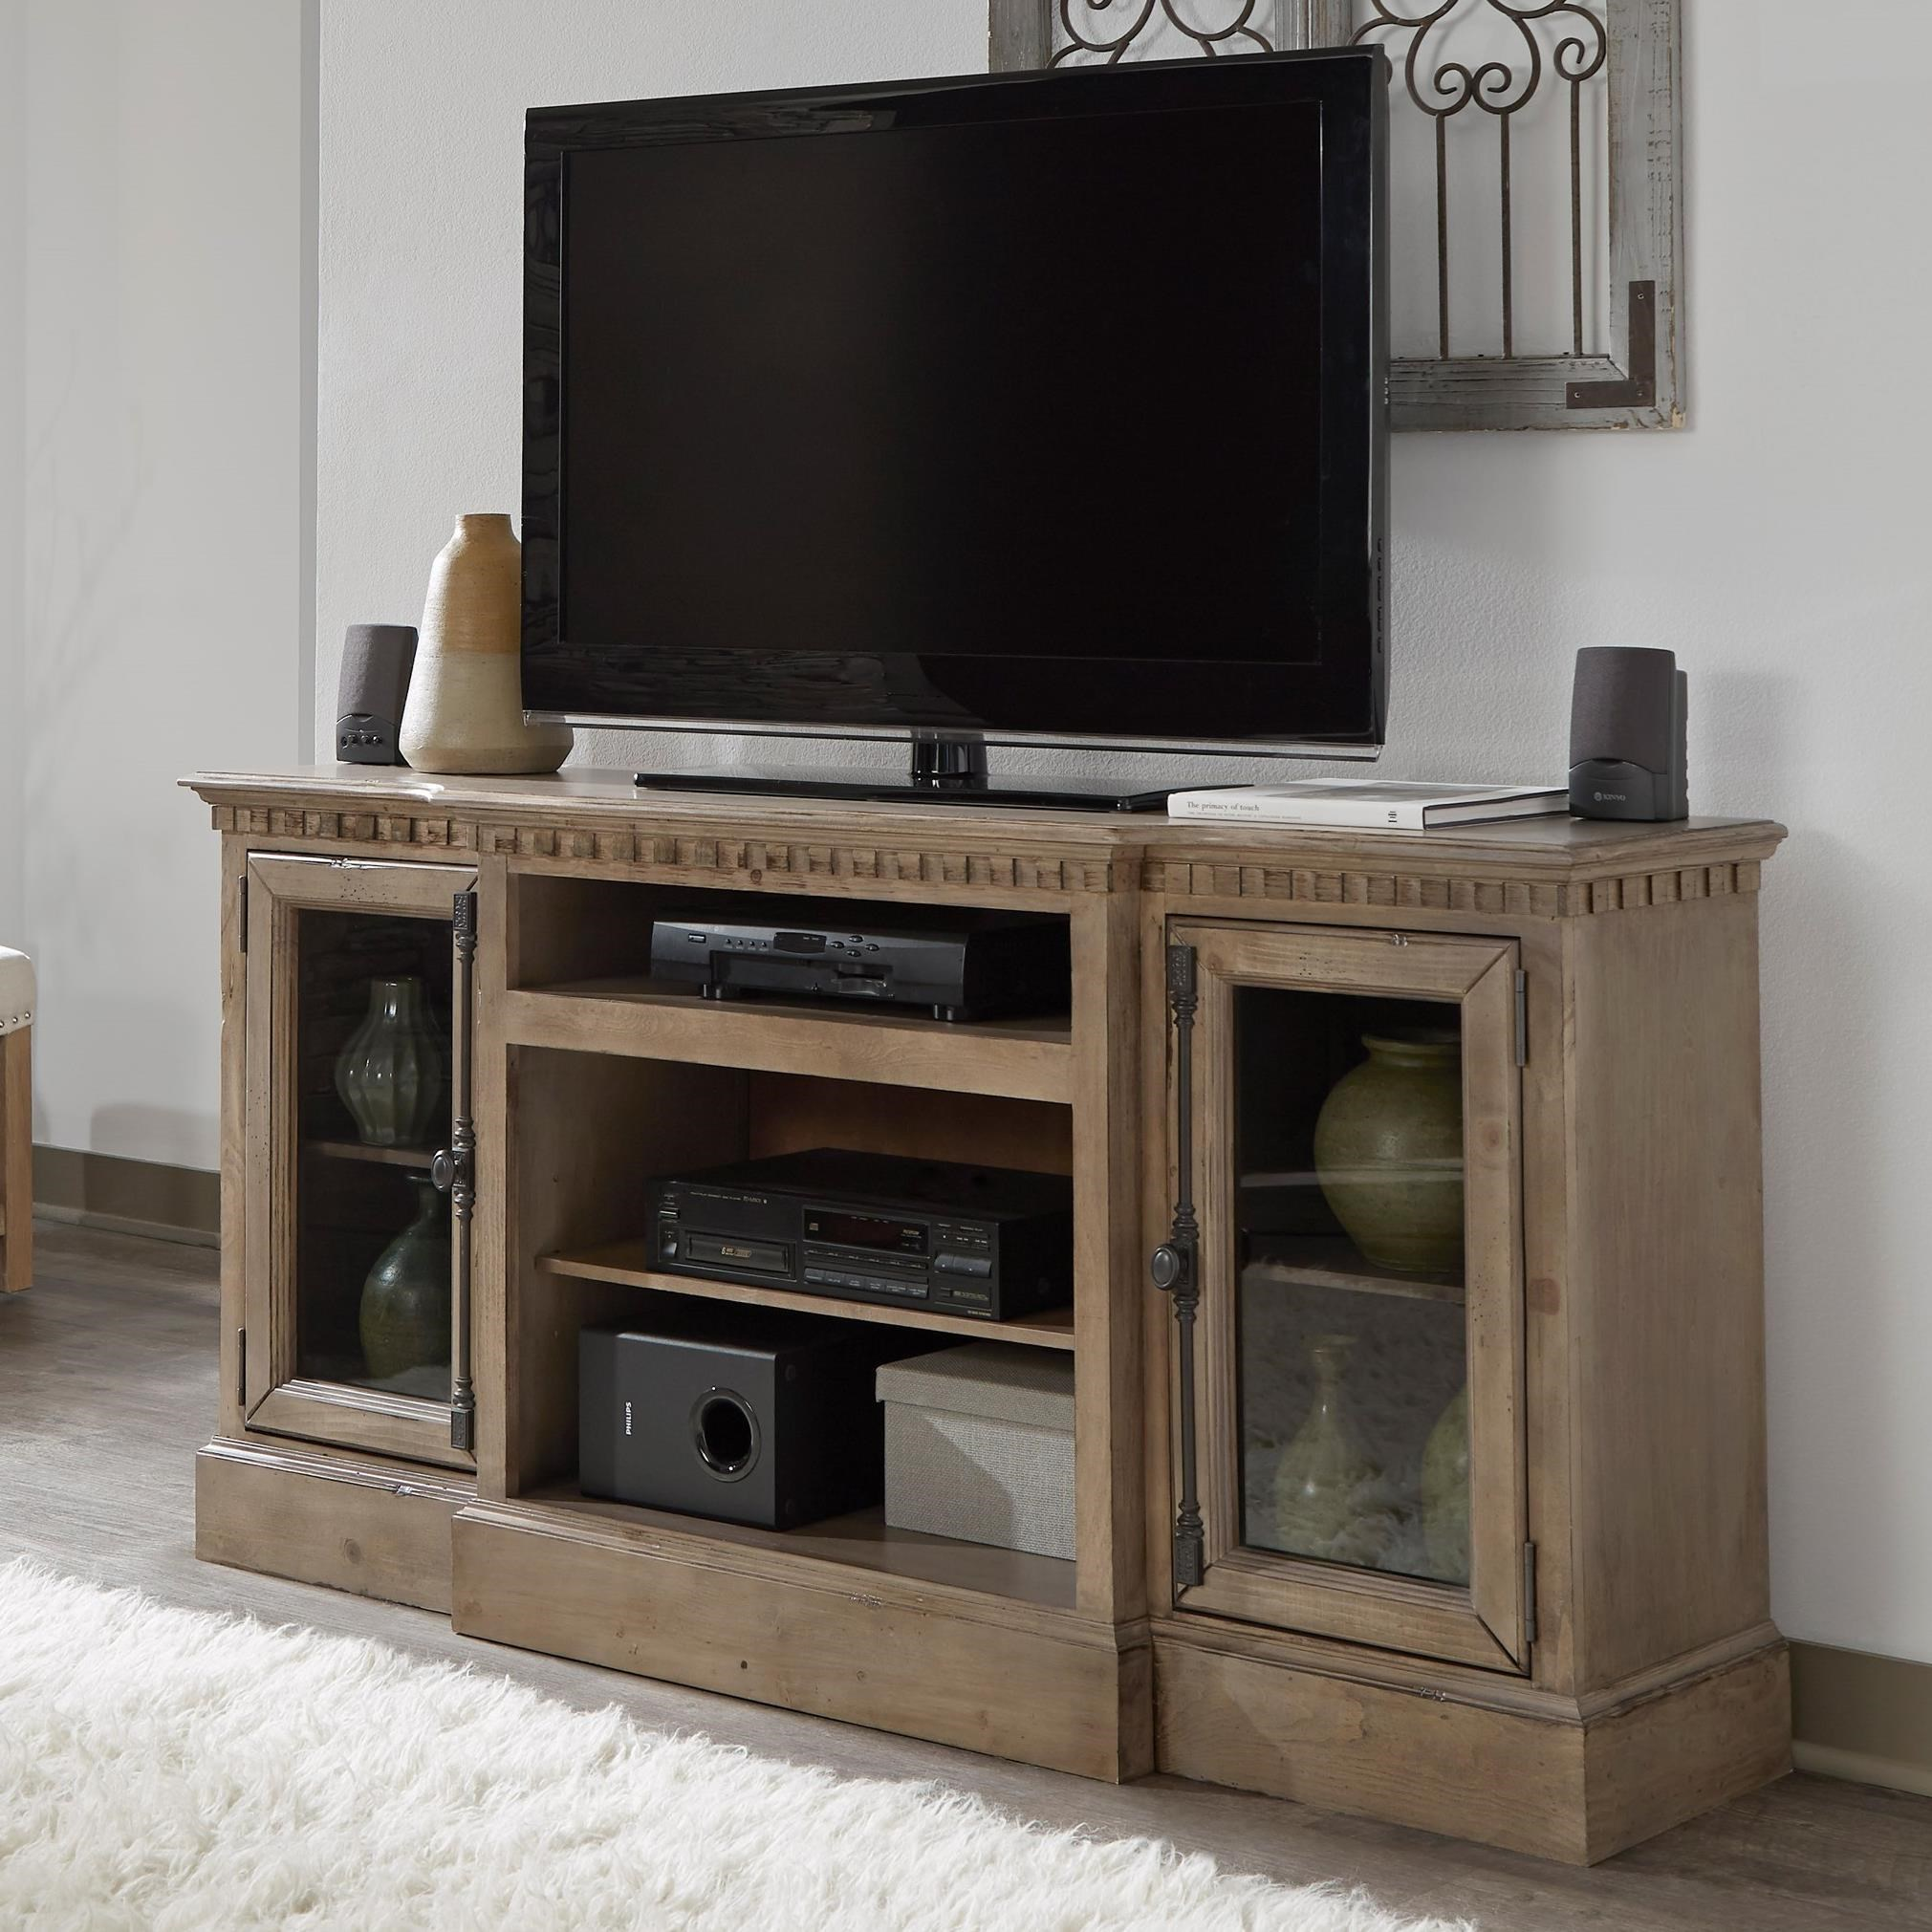 "Andover Court 64"" Console by Progressive Furniture at Van Hill Furniture"